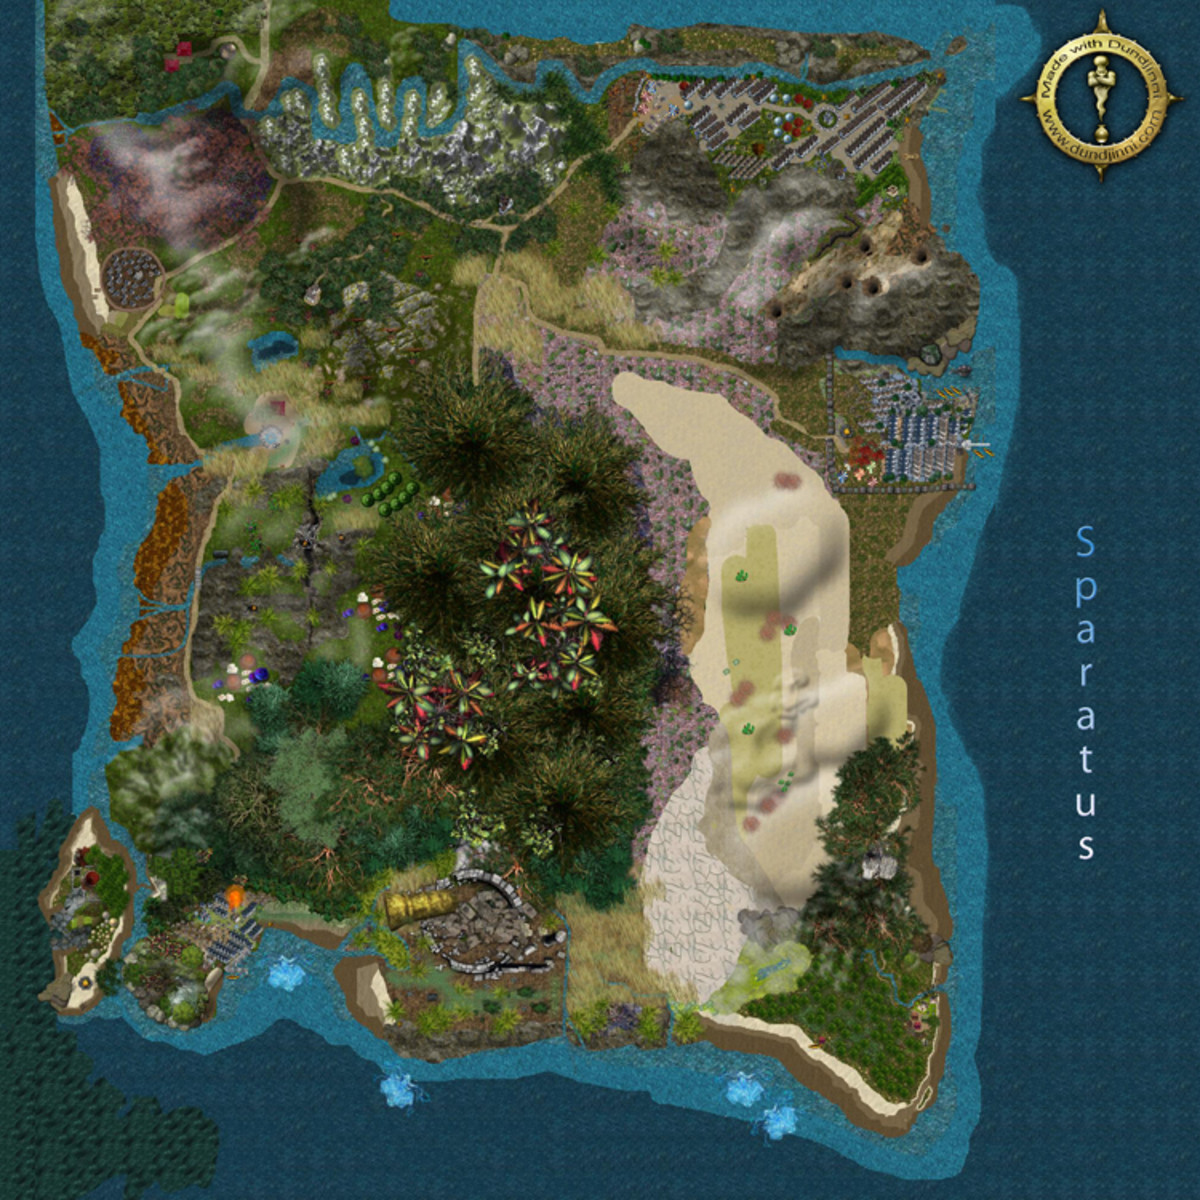 The country, Sparatus from the fantasy world, Azur during the Age of Ahnicus.  This creative map was made with Dunjinni mapping software.